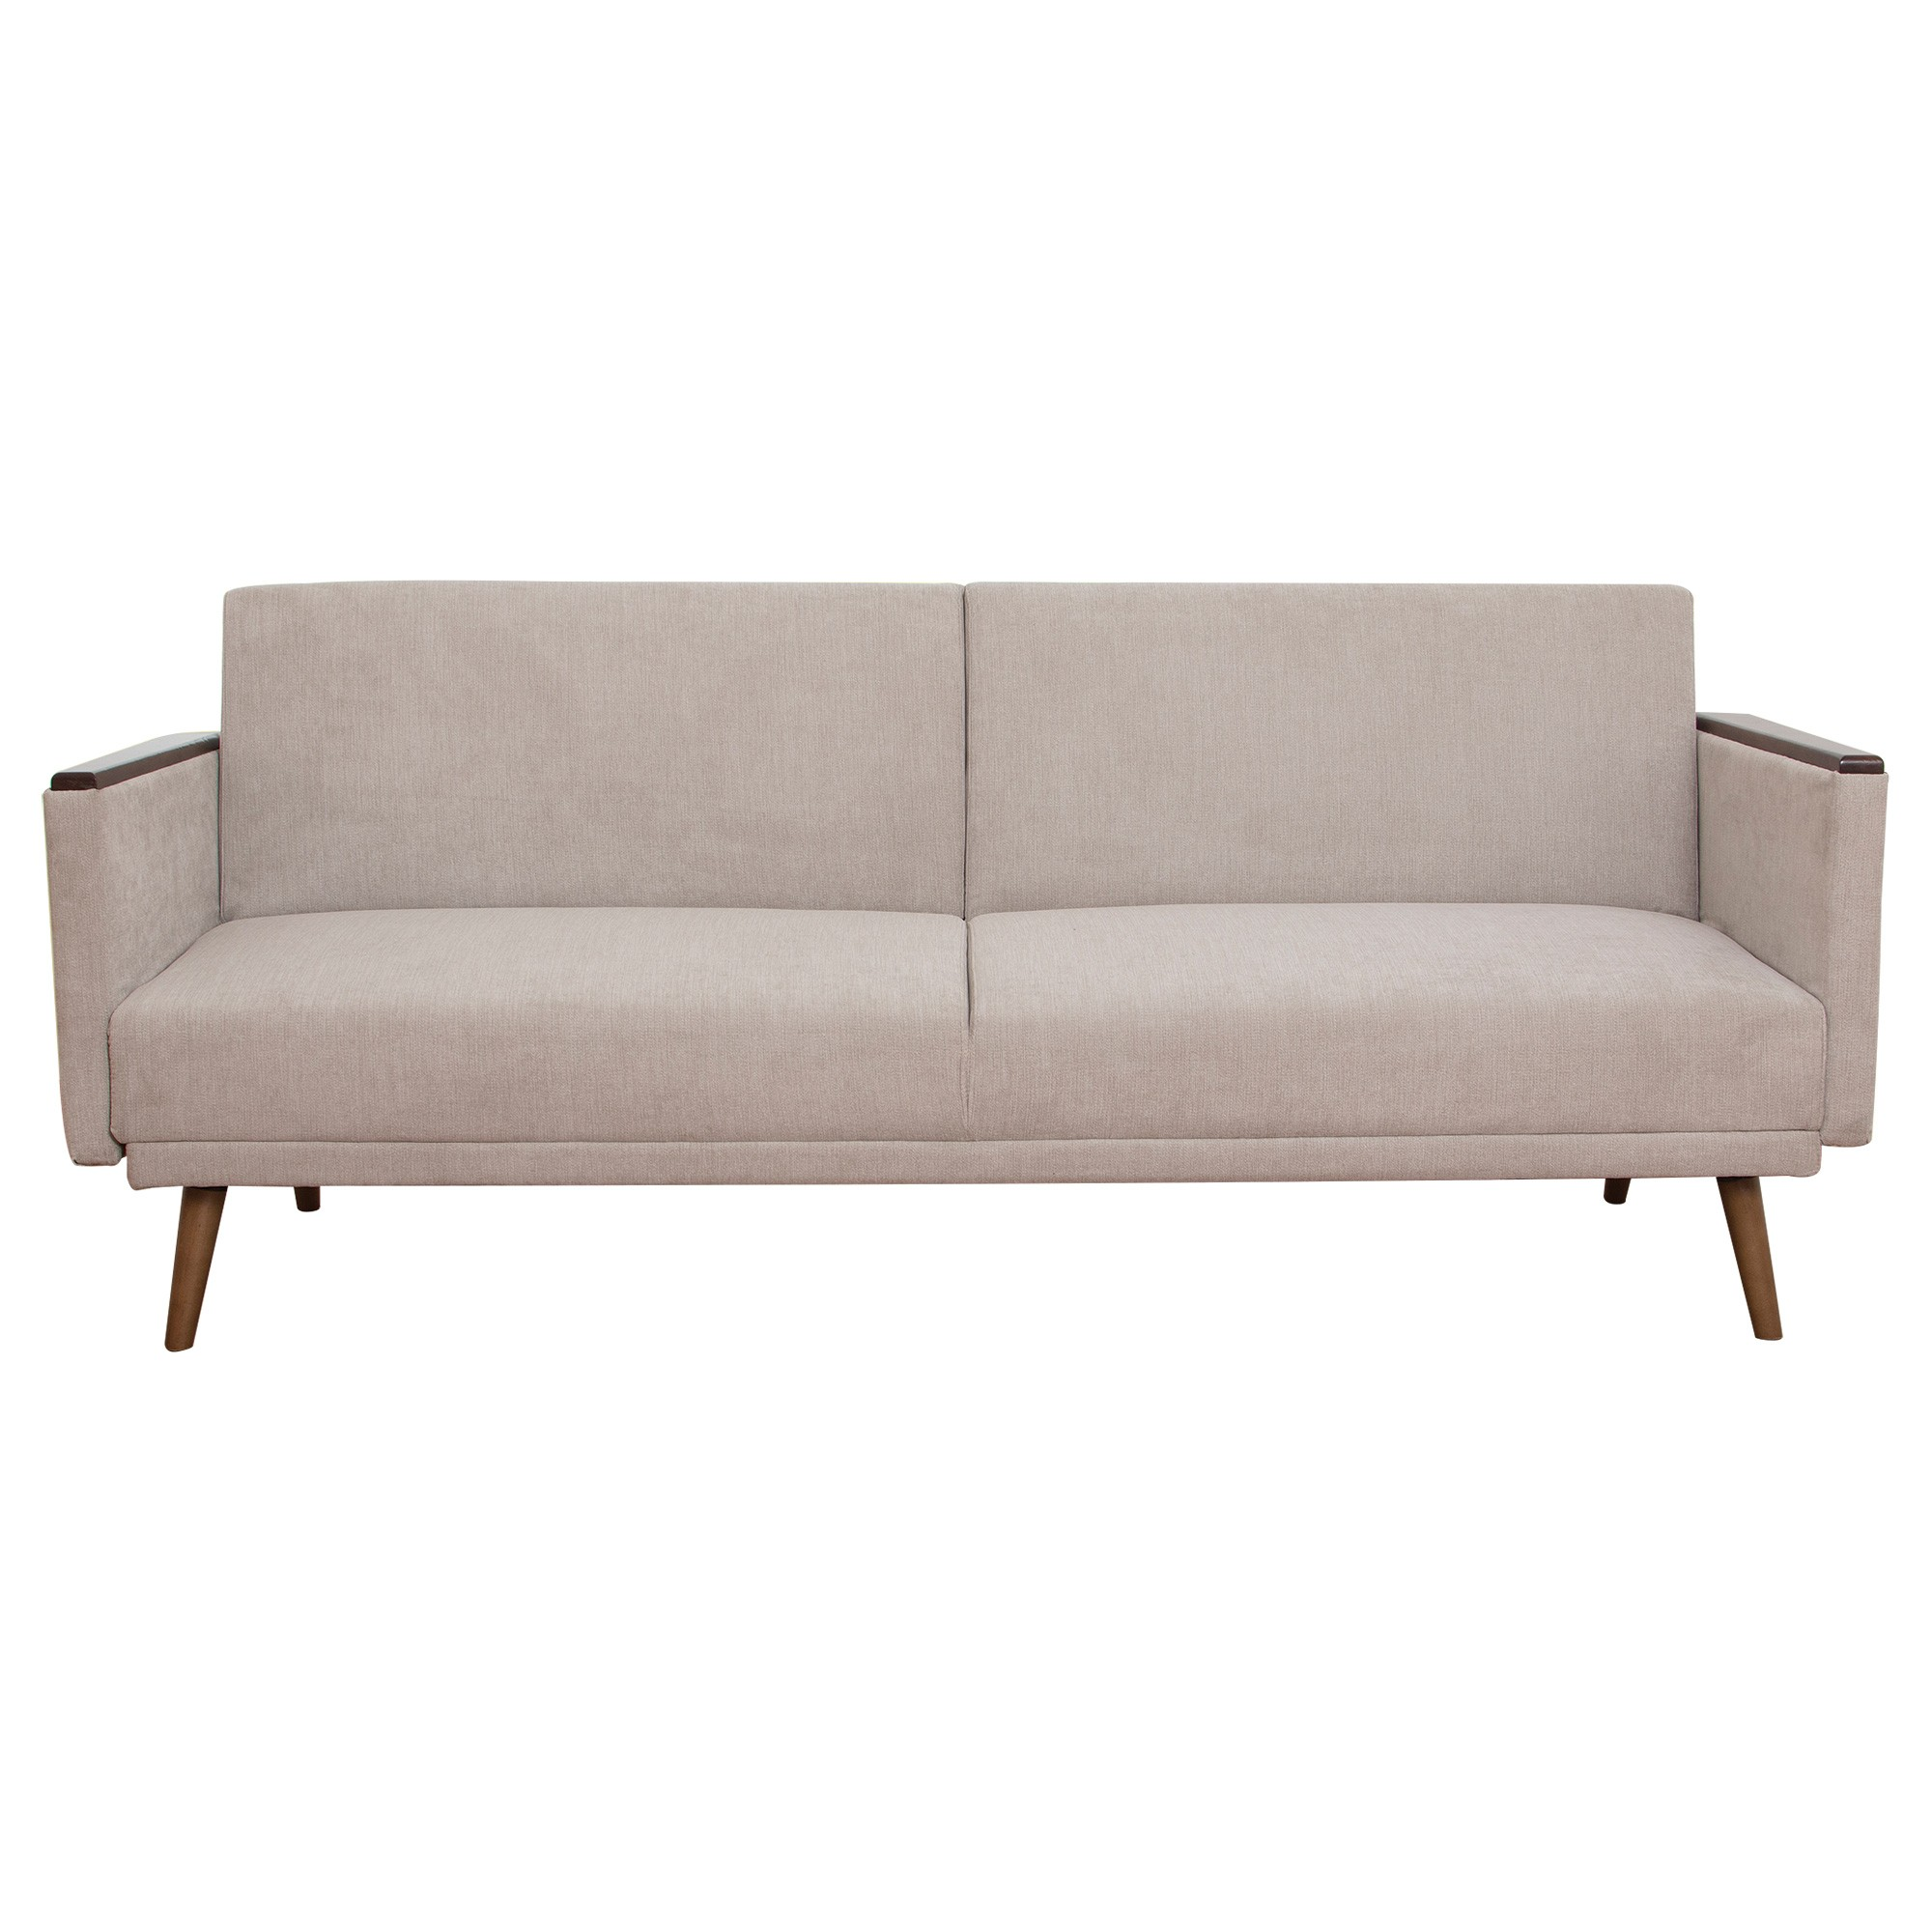 Jasper Ezy Action Fabric Futon Sofa Bed, Latte